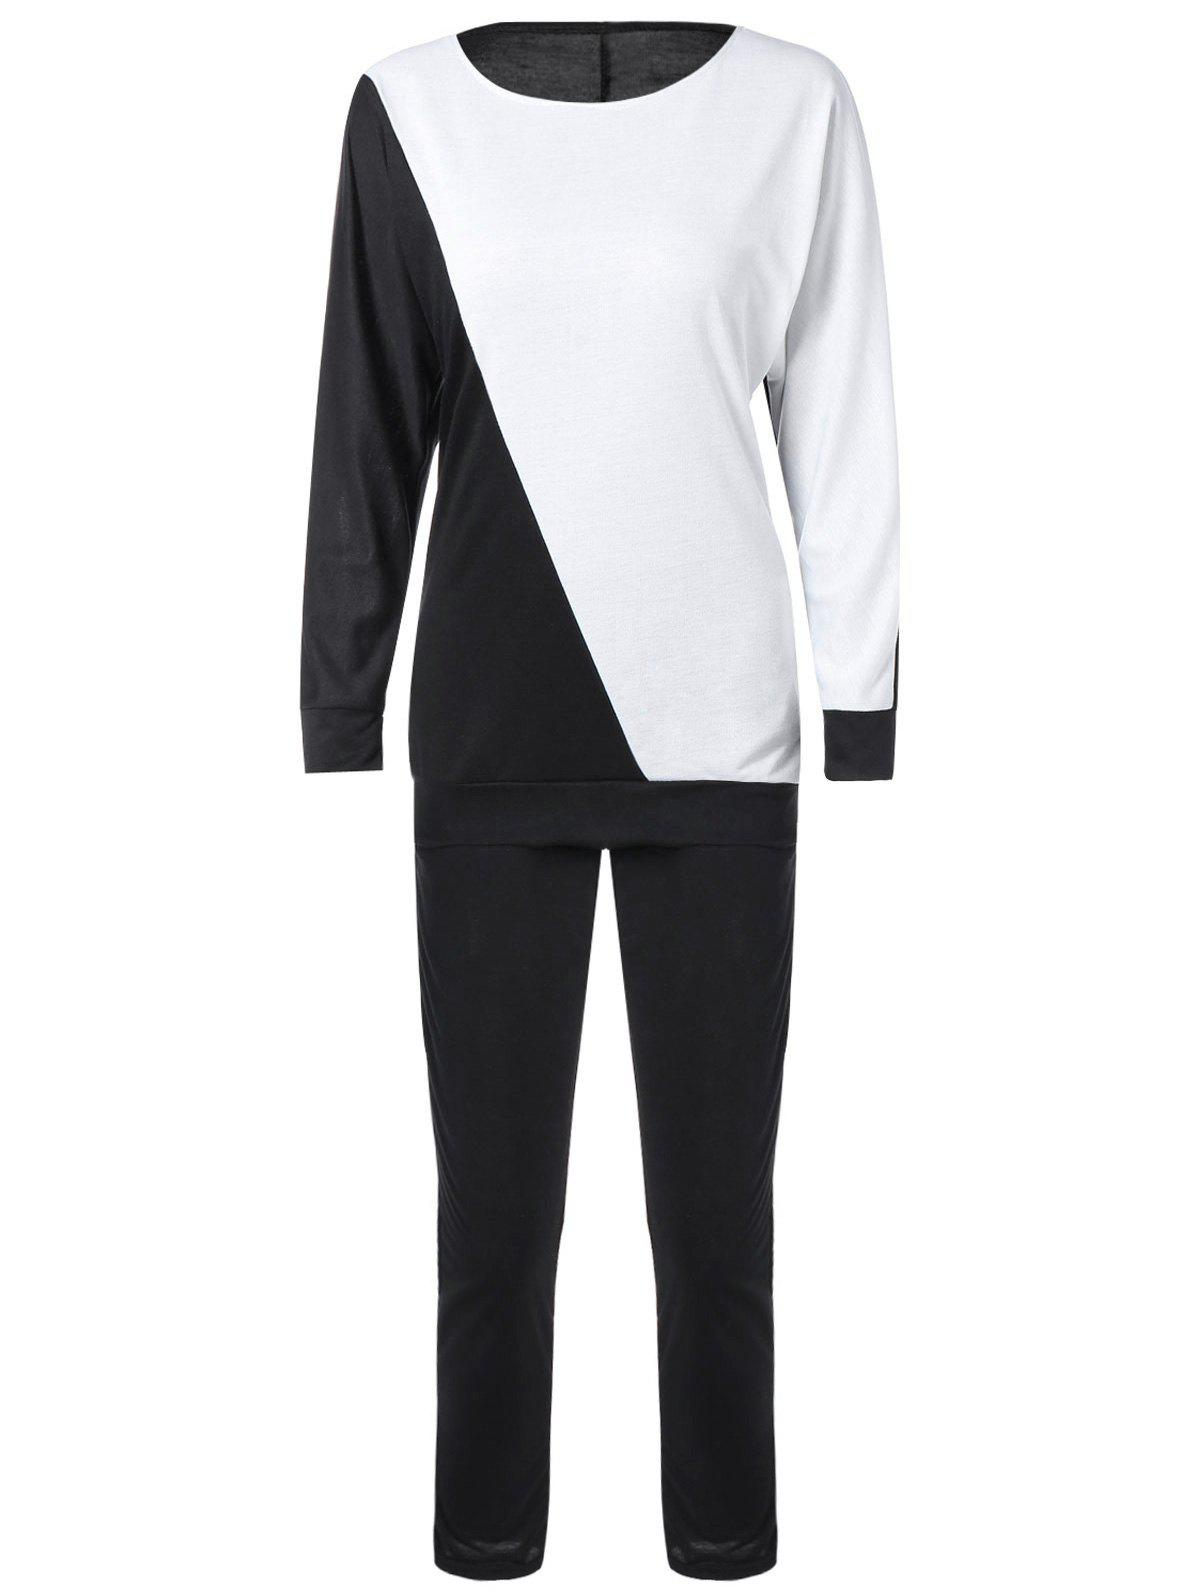 Long Sleeve Color Block Sweatshirt avec Pants - Blanc et Noir XL